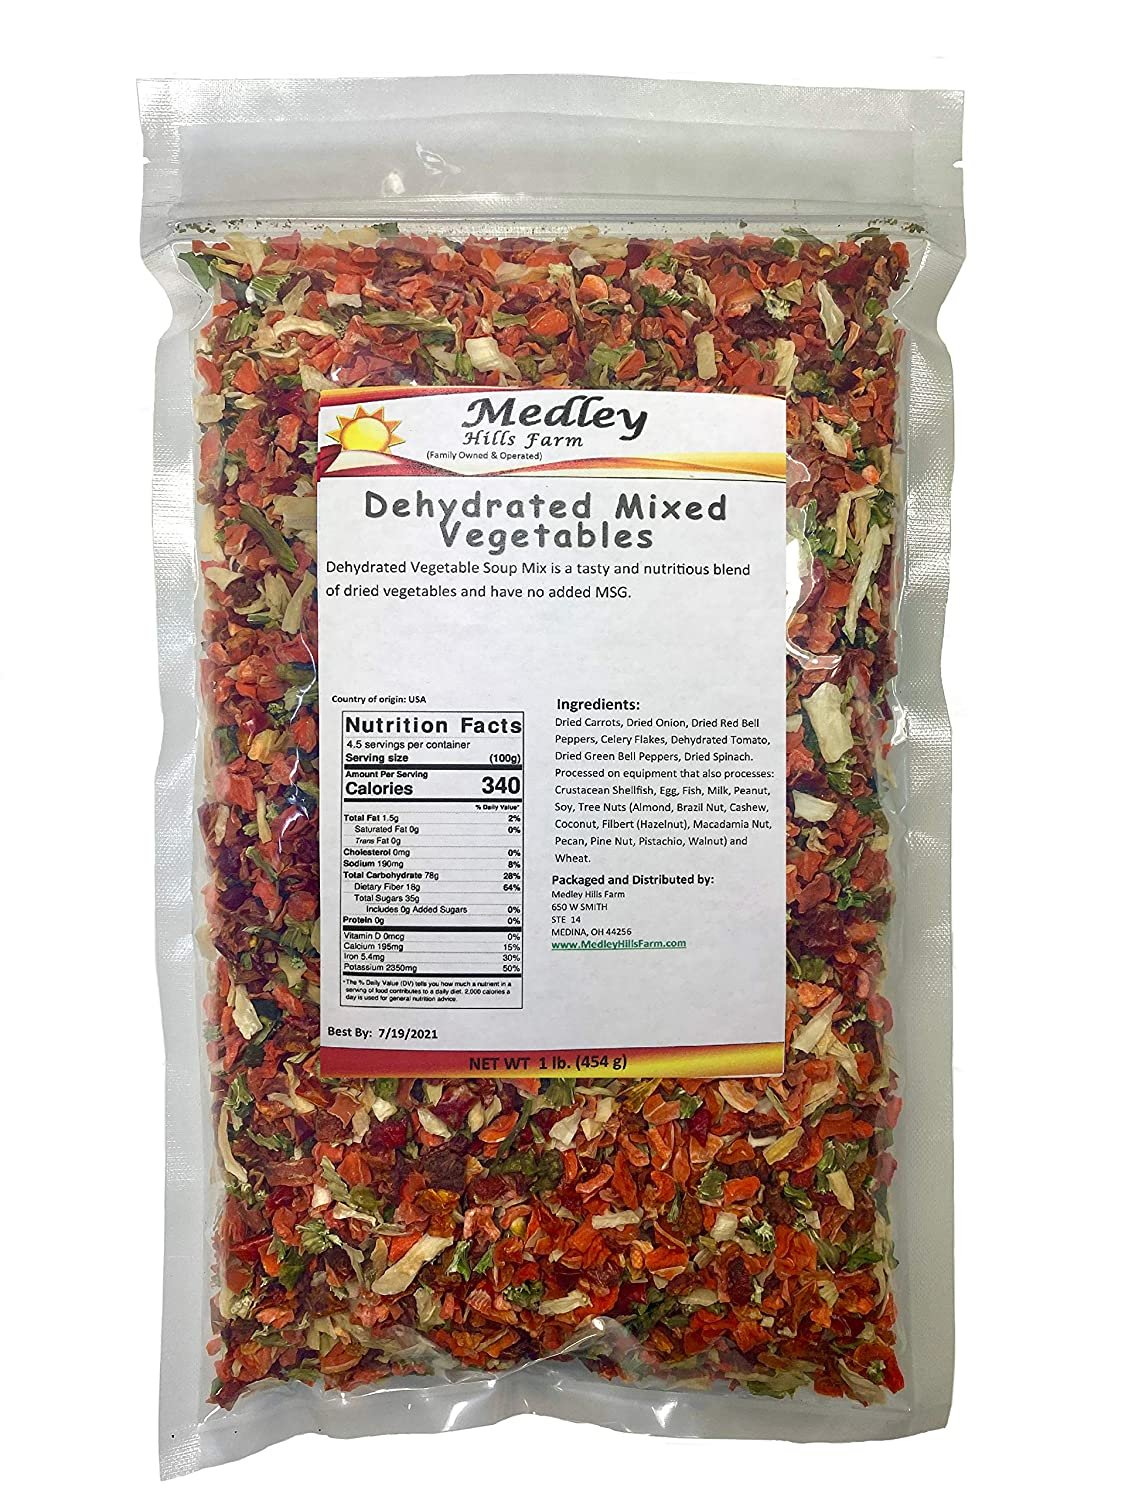 Dehydrated Mixed Vegetables By Medley Hills farm All Natural Soup Greens Vegetable Soup Mix 1 Lb.